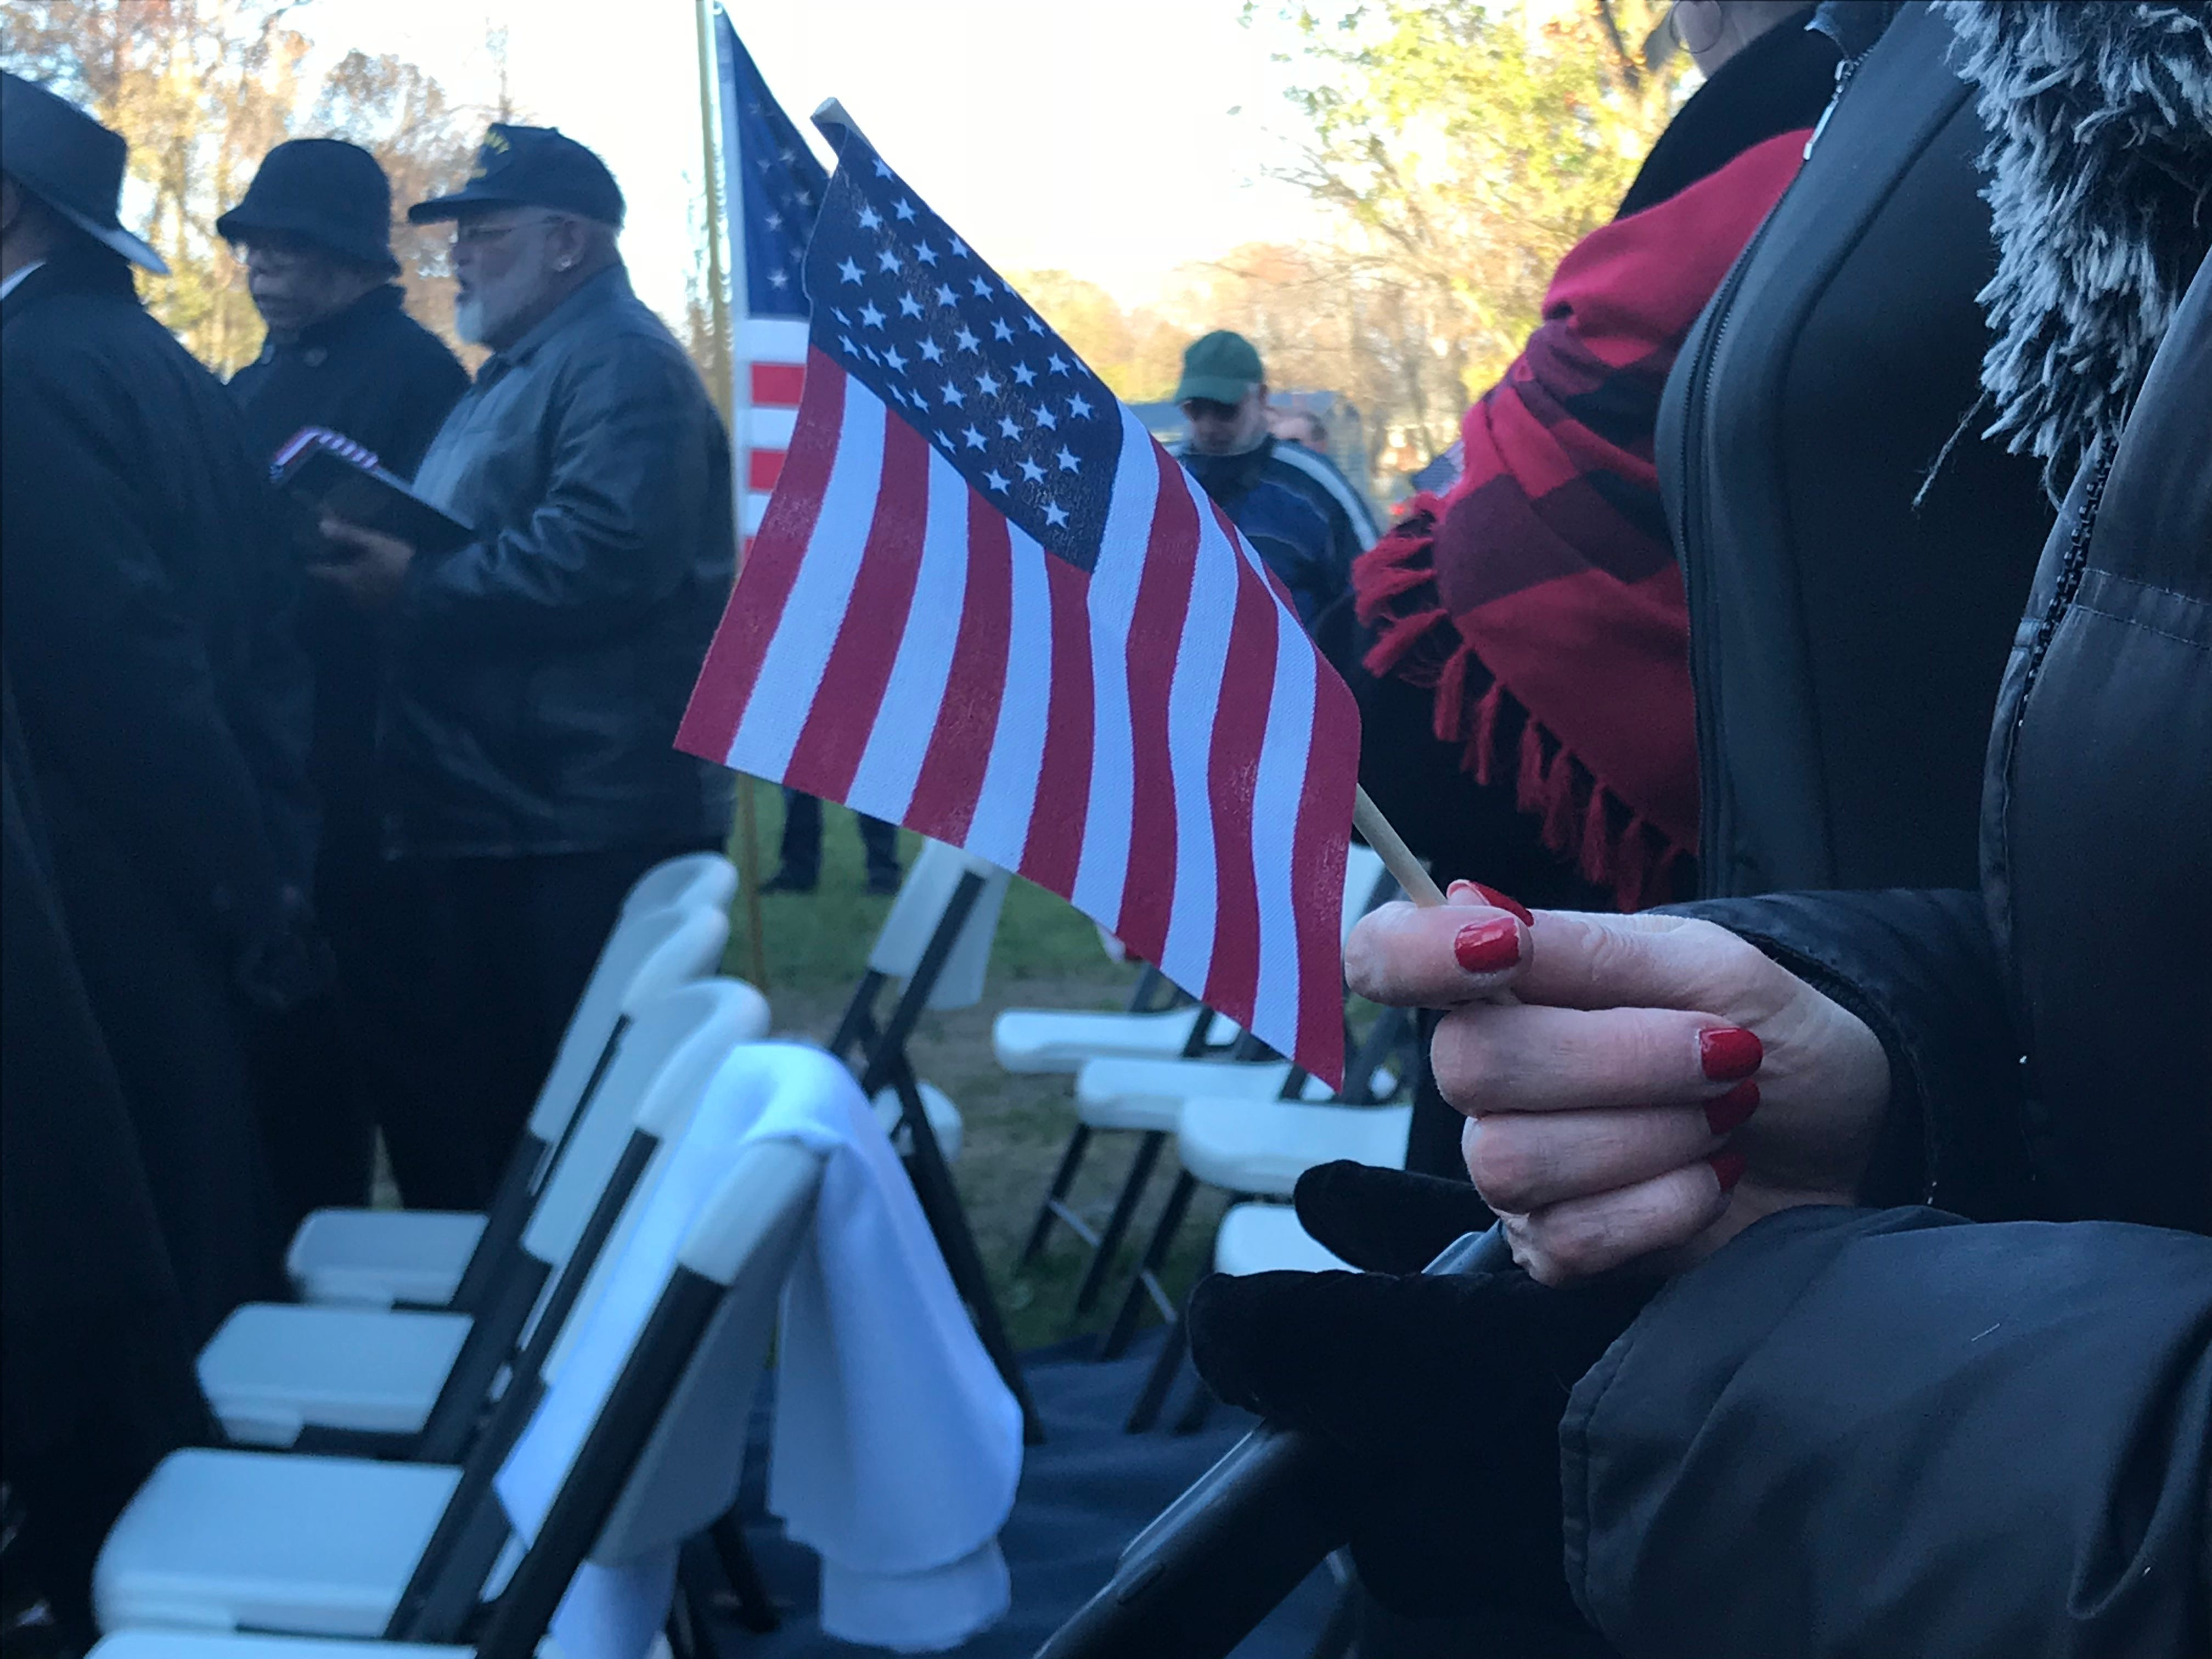 """Assemblywoman Joann Downey holds up an American flag as the Bethel AME Church choir sings Nov. 11, 2018, at Veterans Park in Freehold Borough. More than 100 people attended the ceremony, which commemorated Bigerton """"Buddy"""" Lewis Jr. and his five brothers, who all served in World War II."""